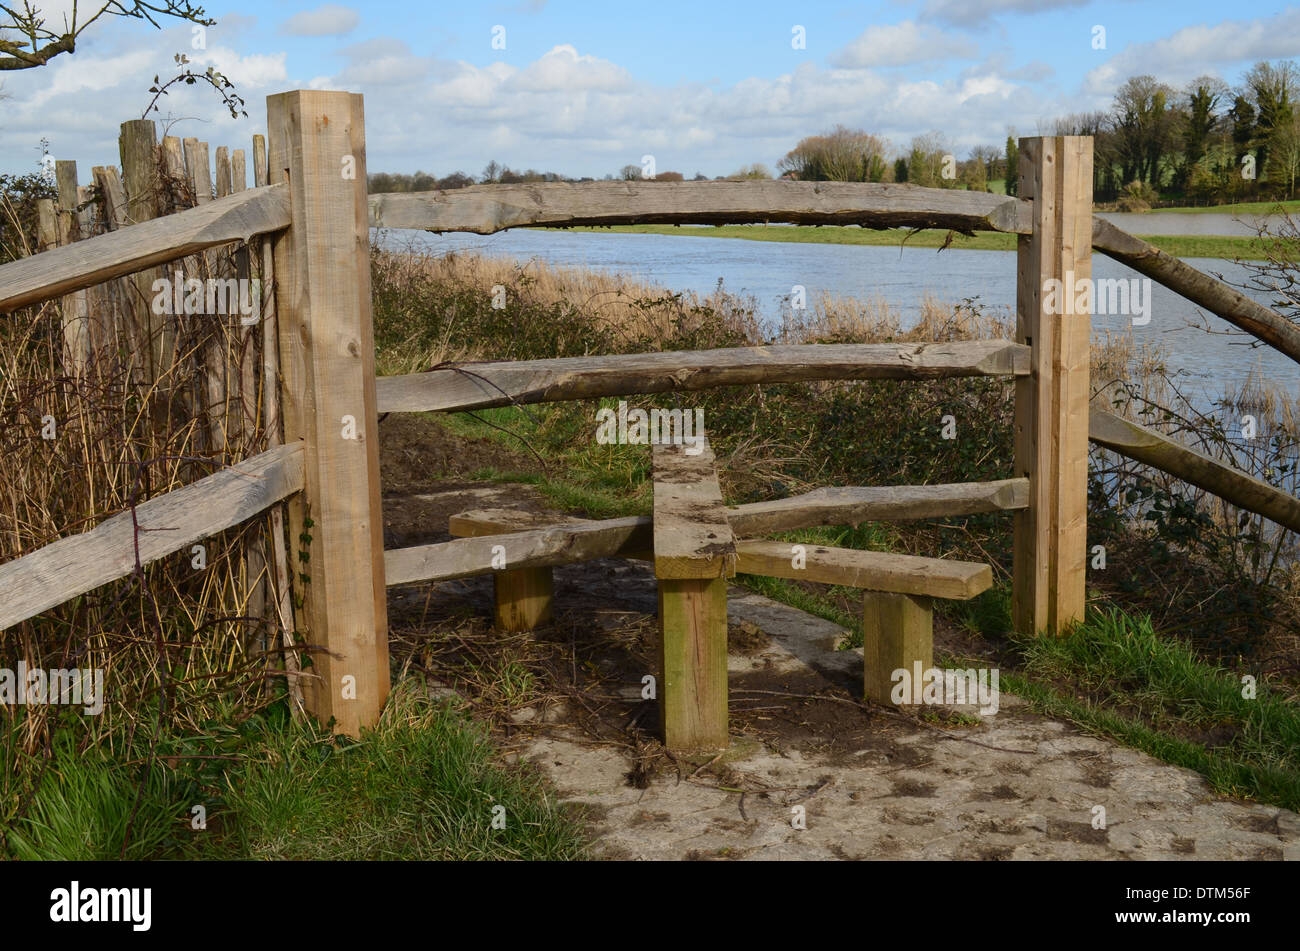 Country Stile Gate Stock Photo 66825991 Alamy